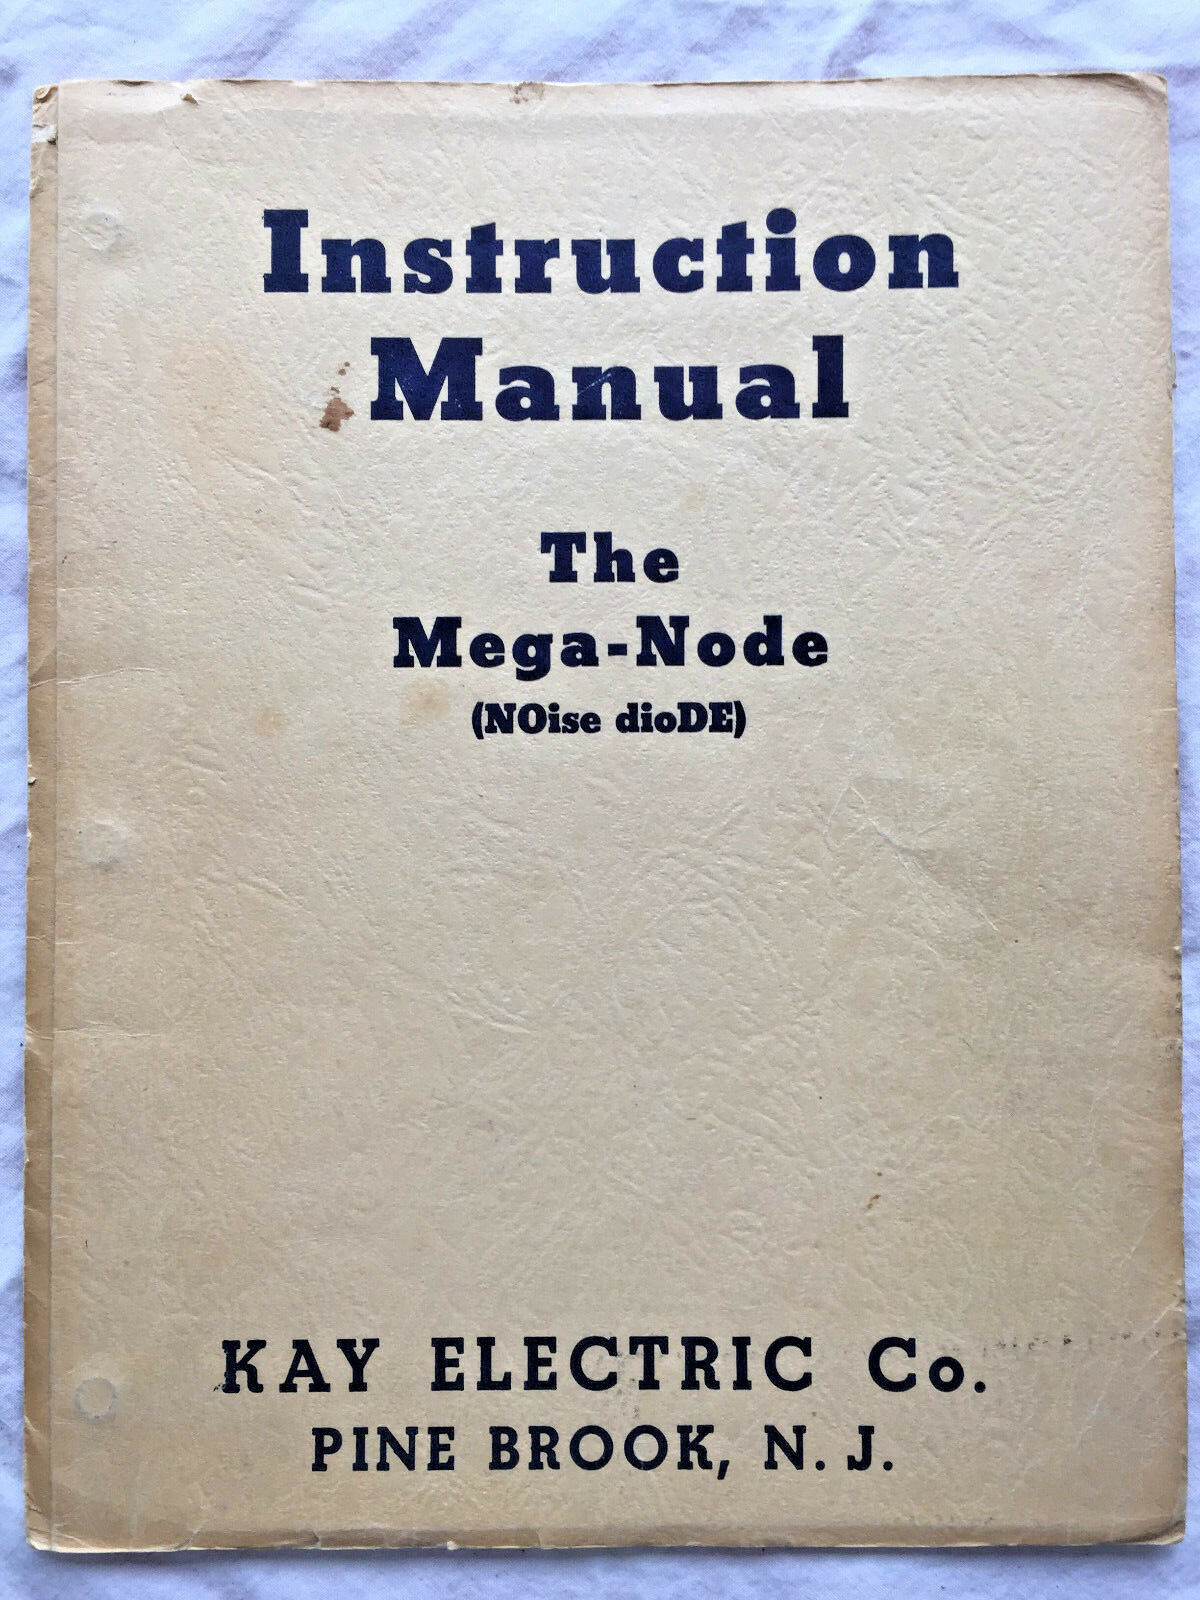 Instruction Manual The Mega Node 1949 Kay Electric Co. / Ham Radio - $9.99